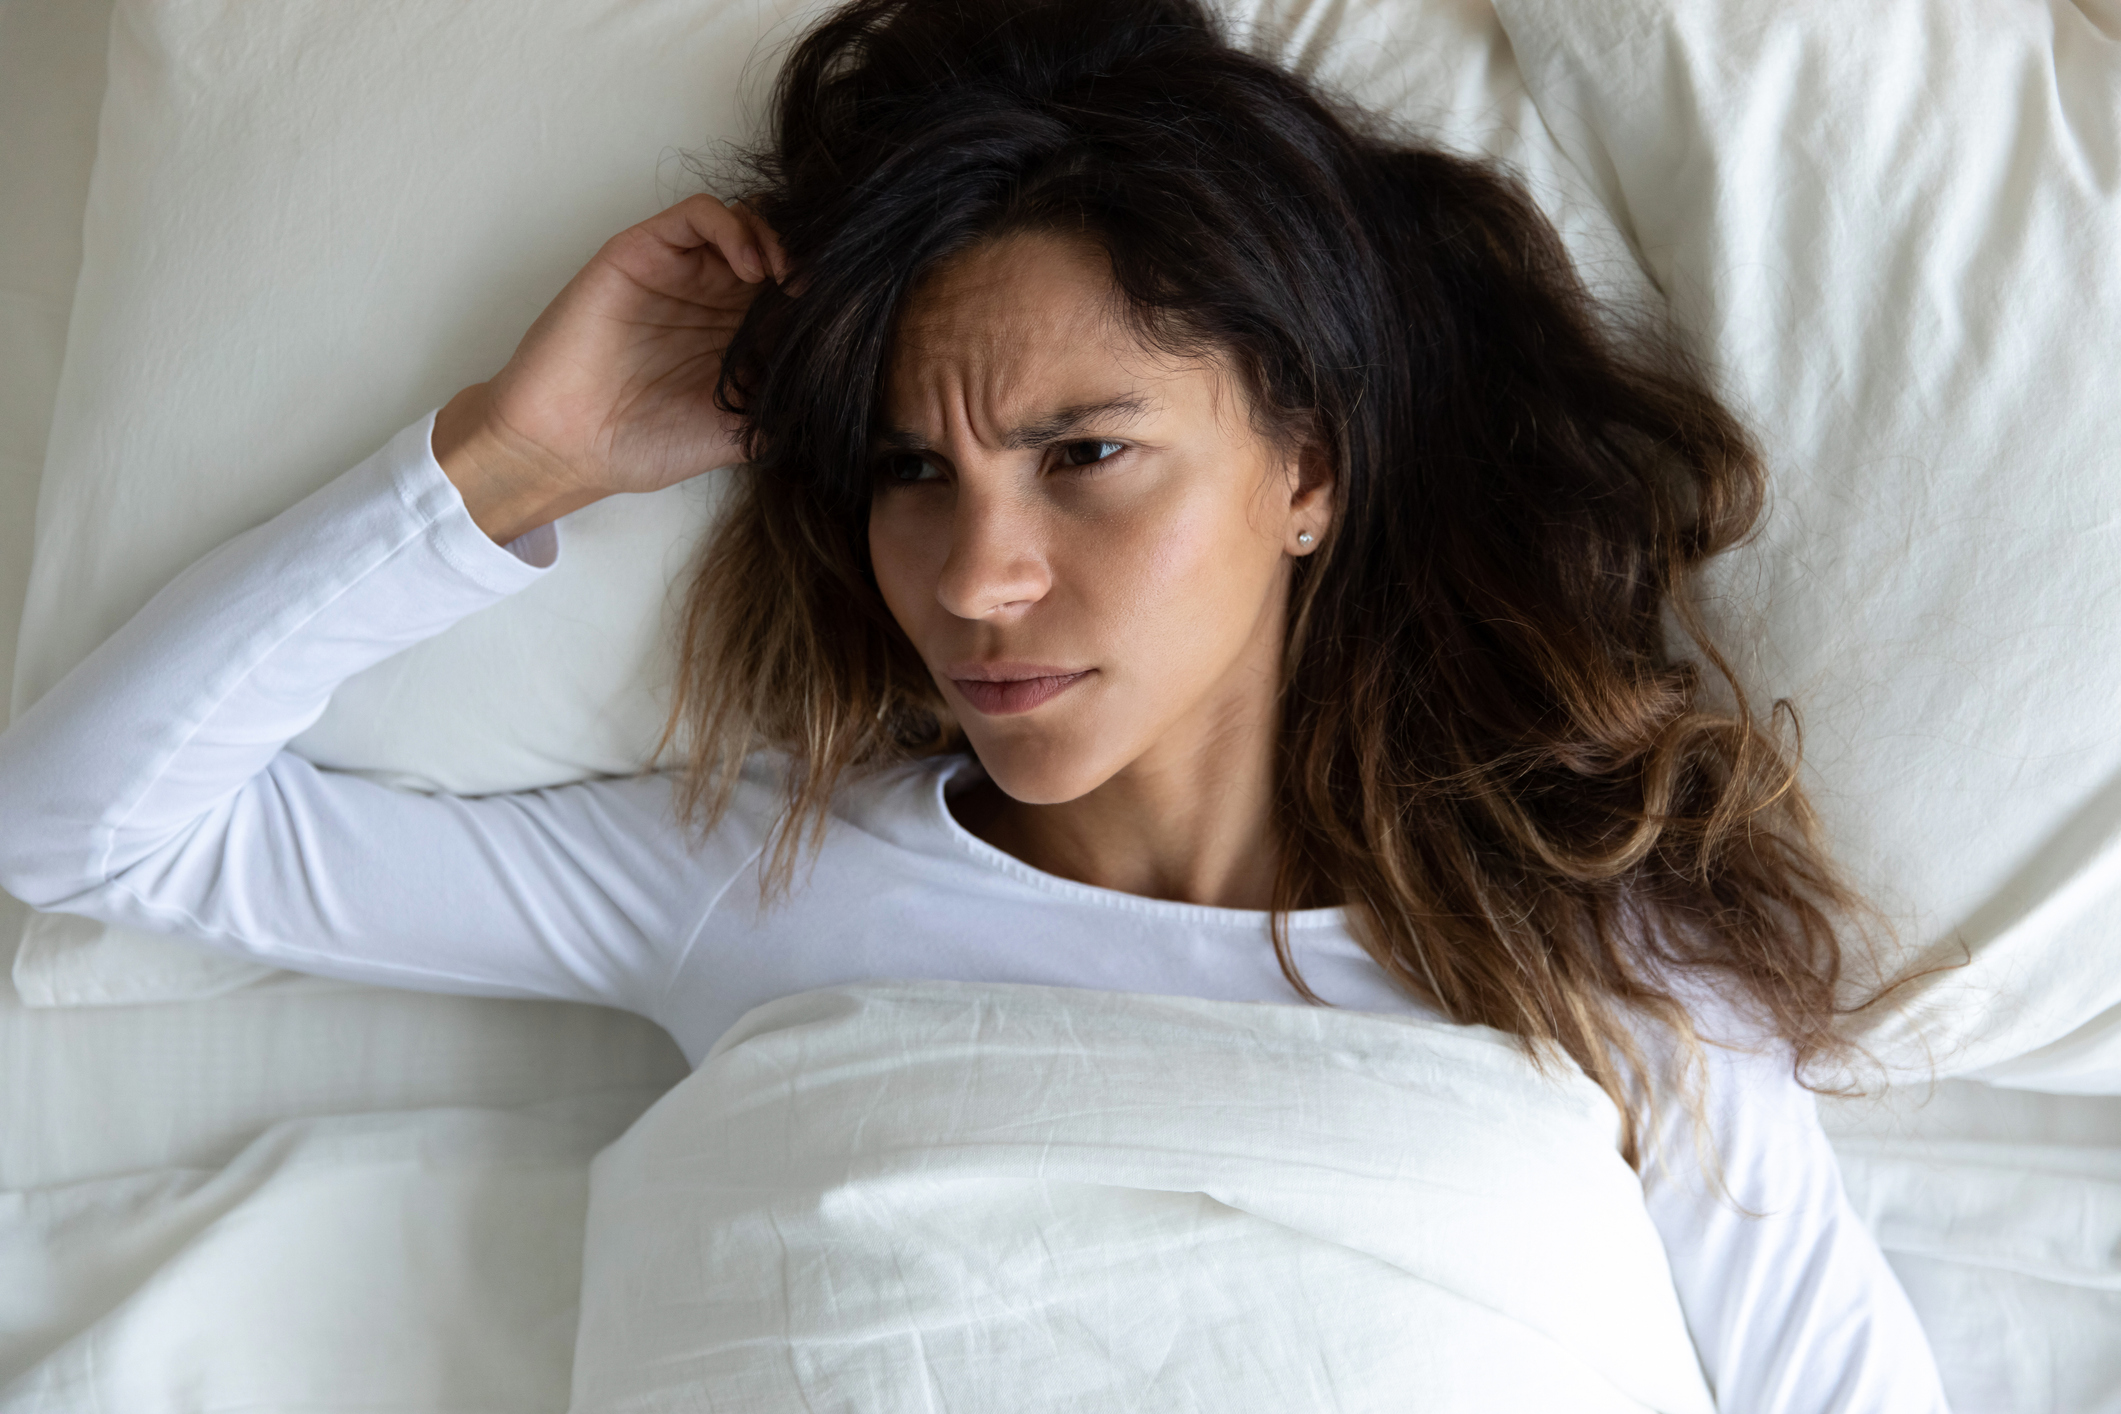 How estrogen dominance affects PMS during perimenopause